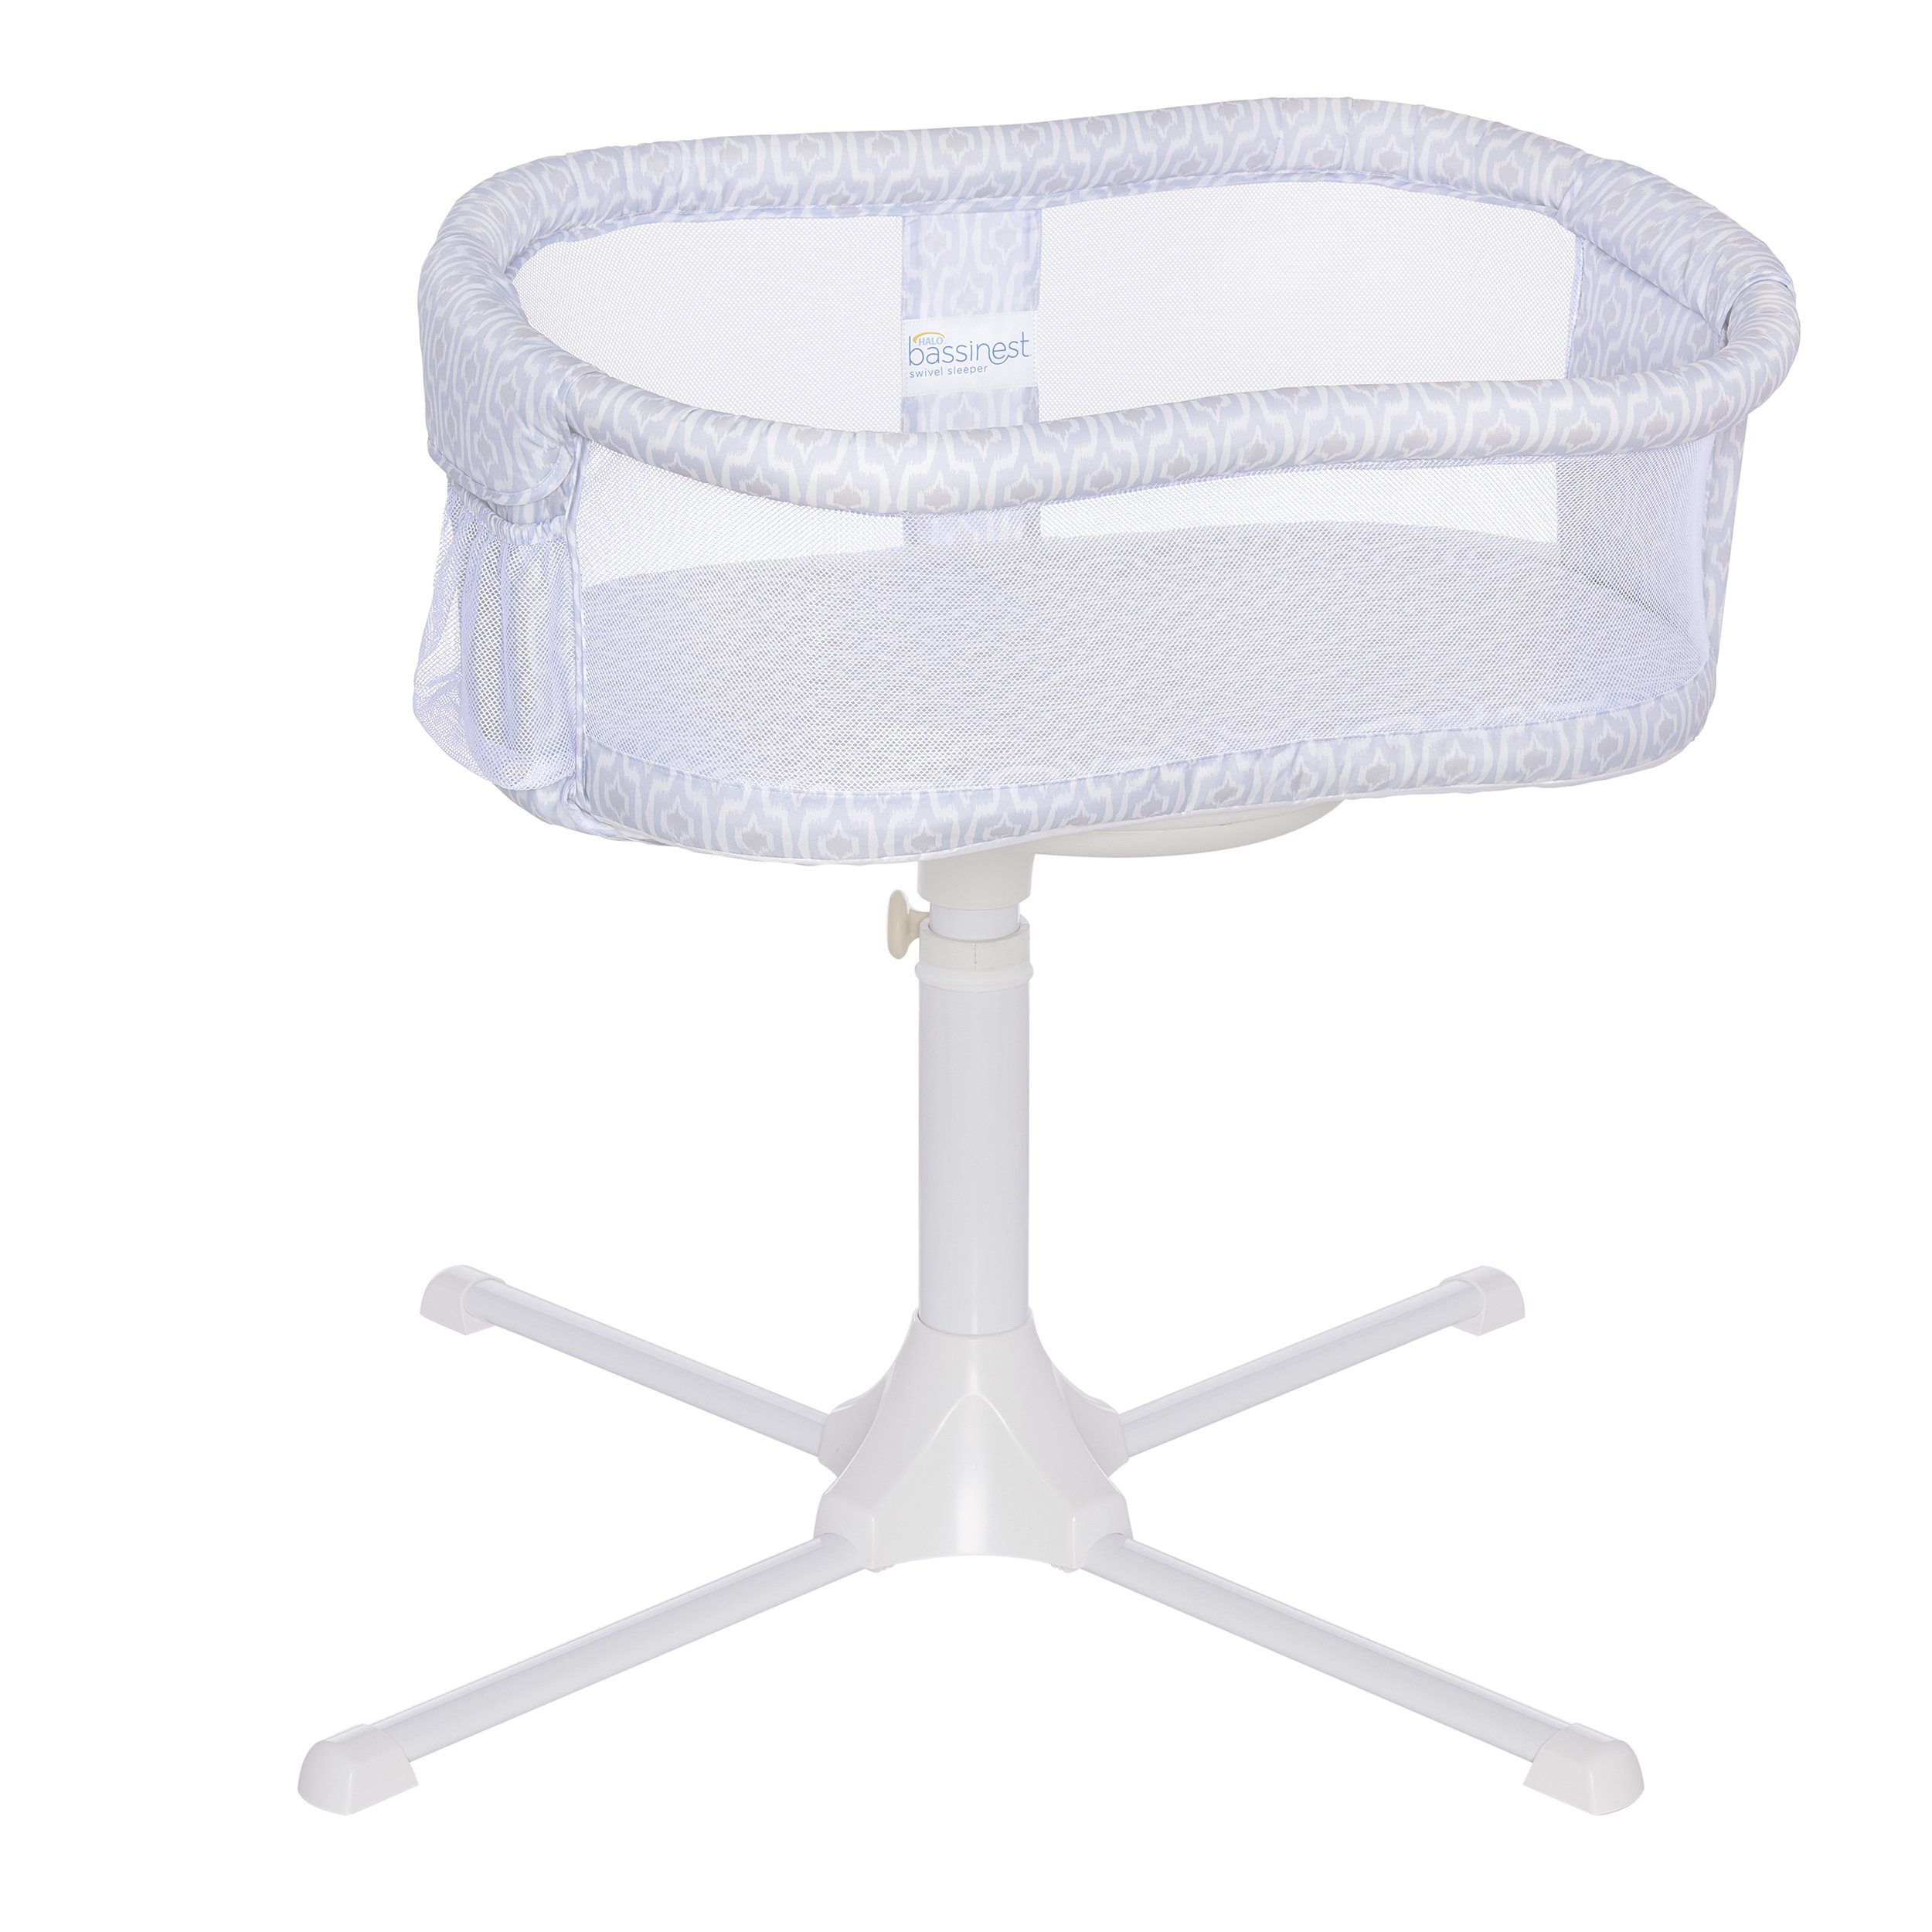 HALO Bassinest Swivel Sleeper Bassinet - Essentia Series, Blue Ikat by Halo (Image #1)